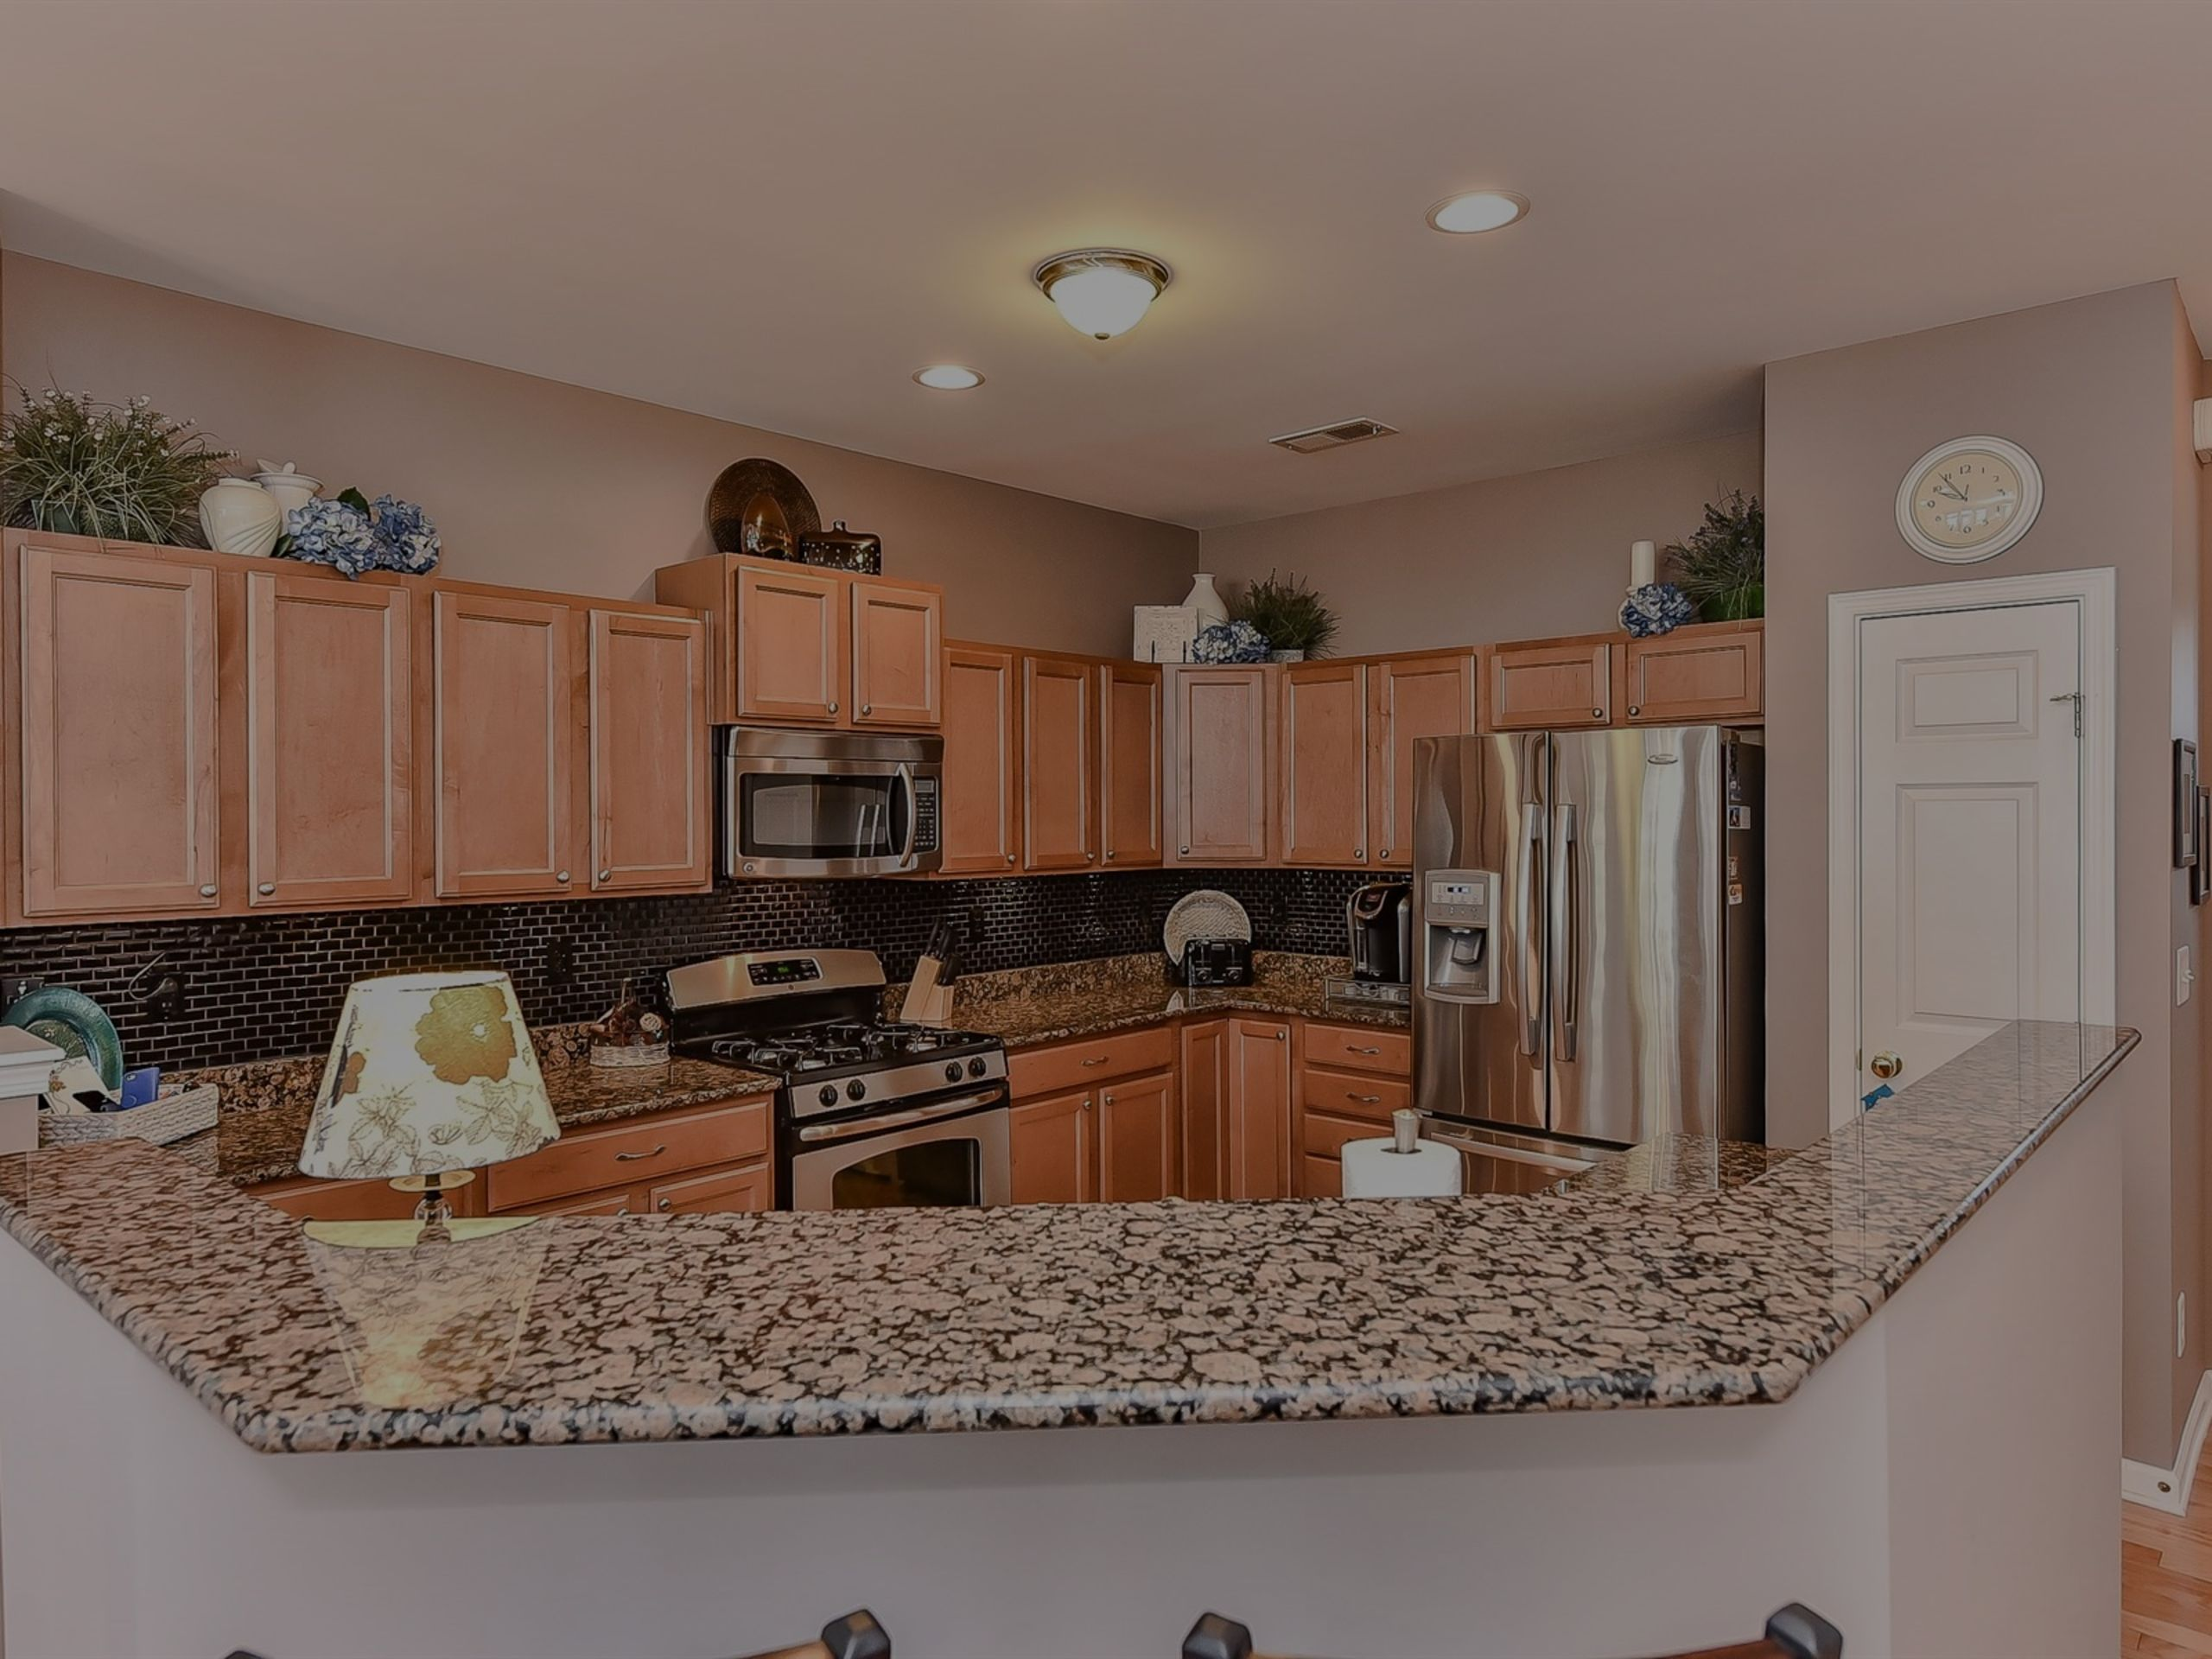 6410 Hasley Woods Drive, Huntersville, NC 28078- Just Listed!